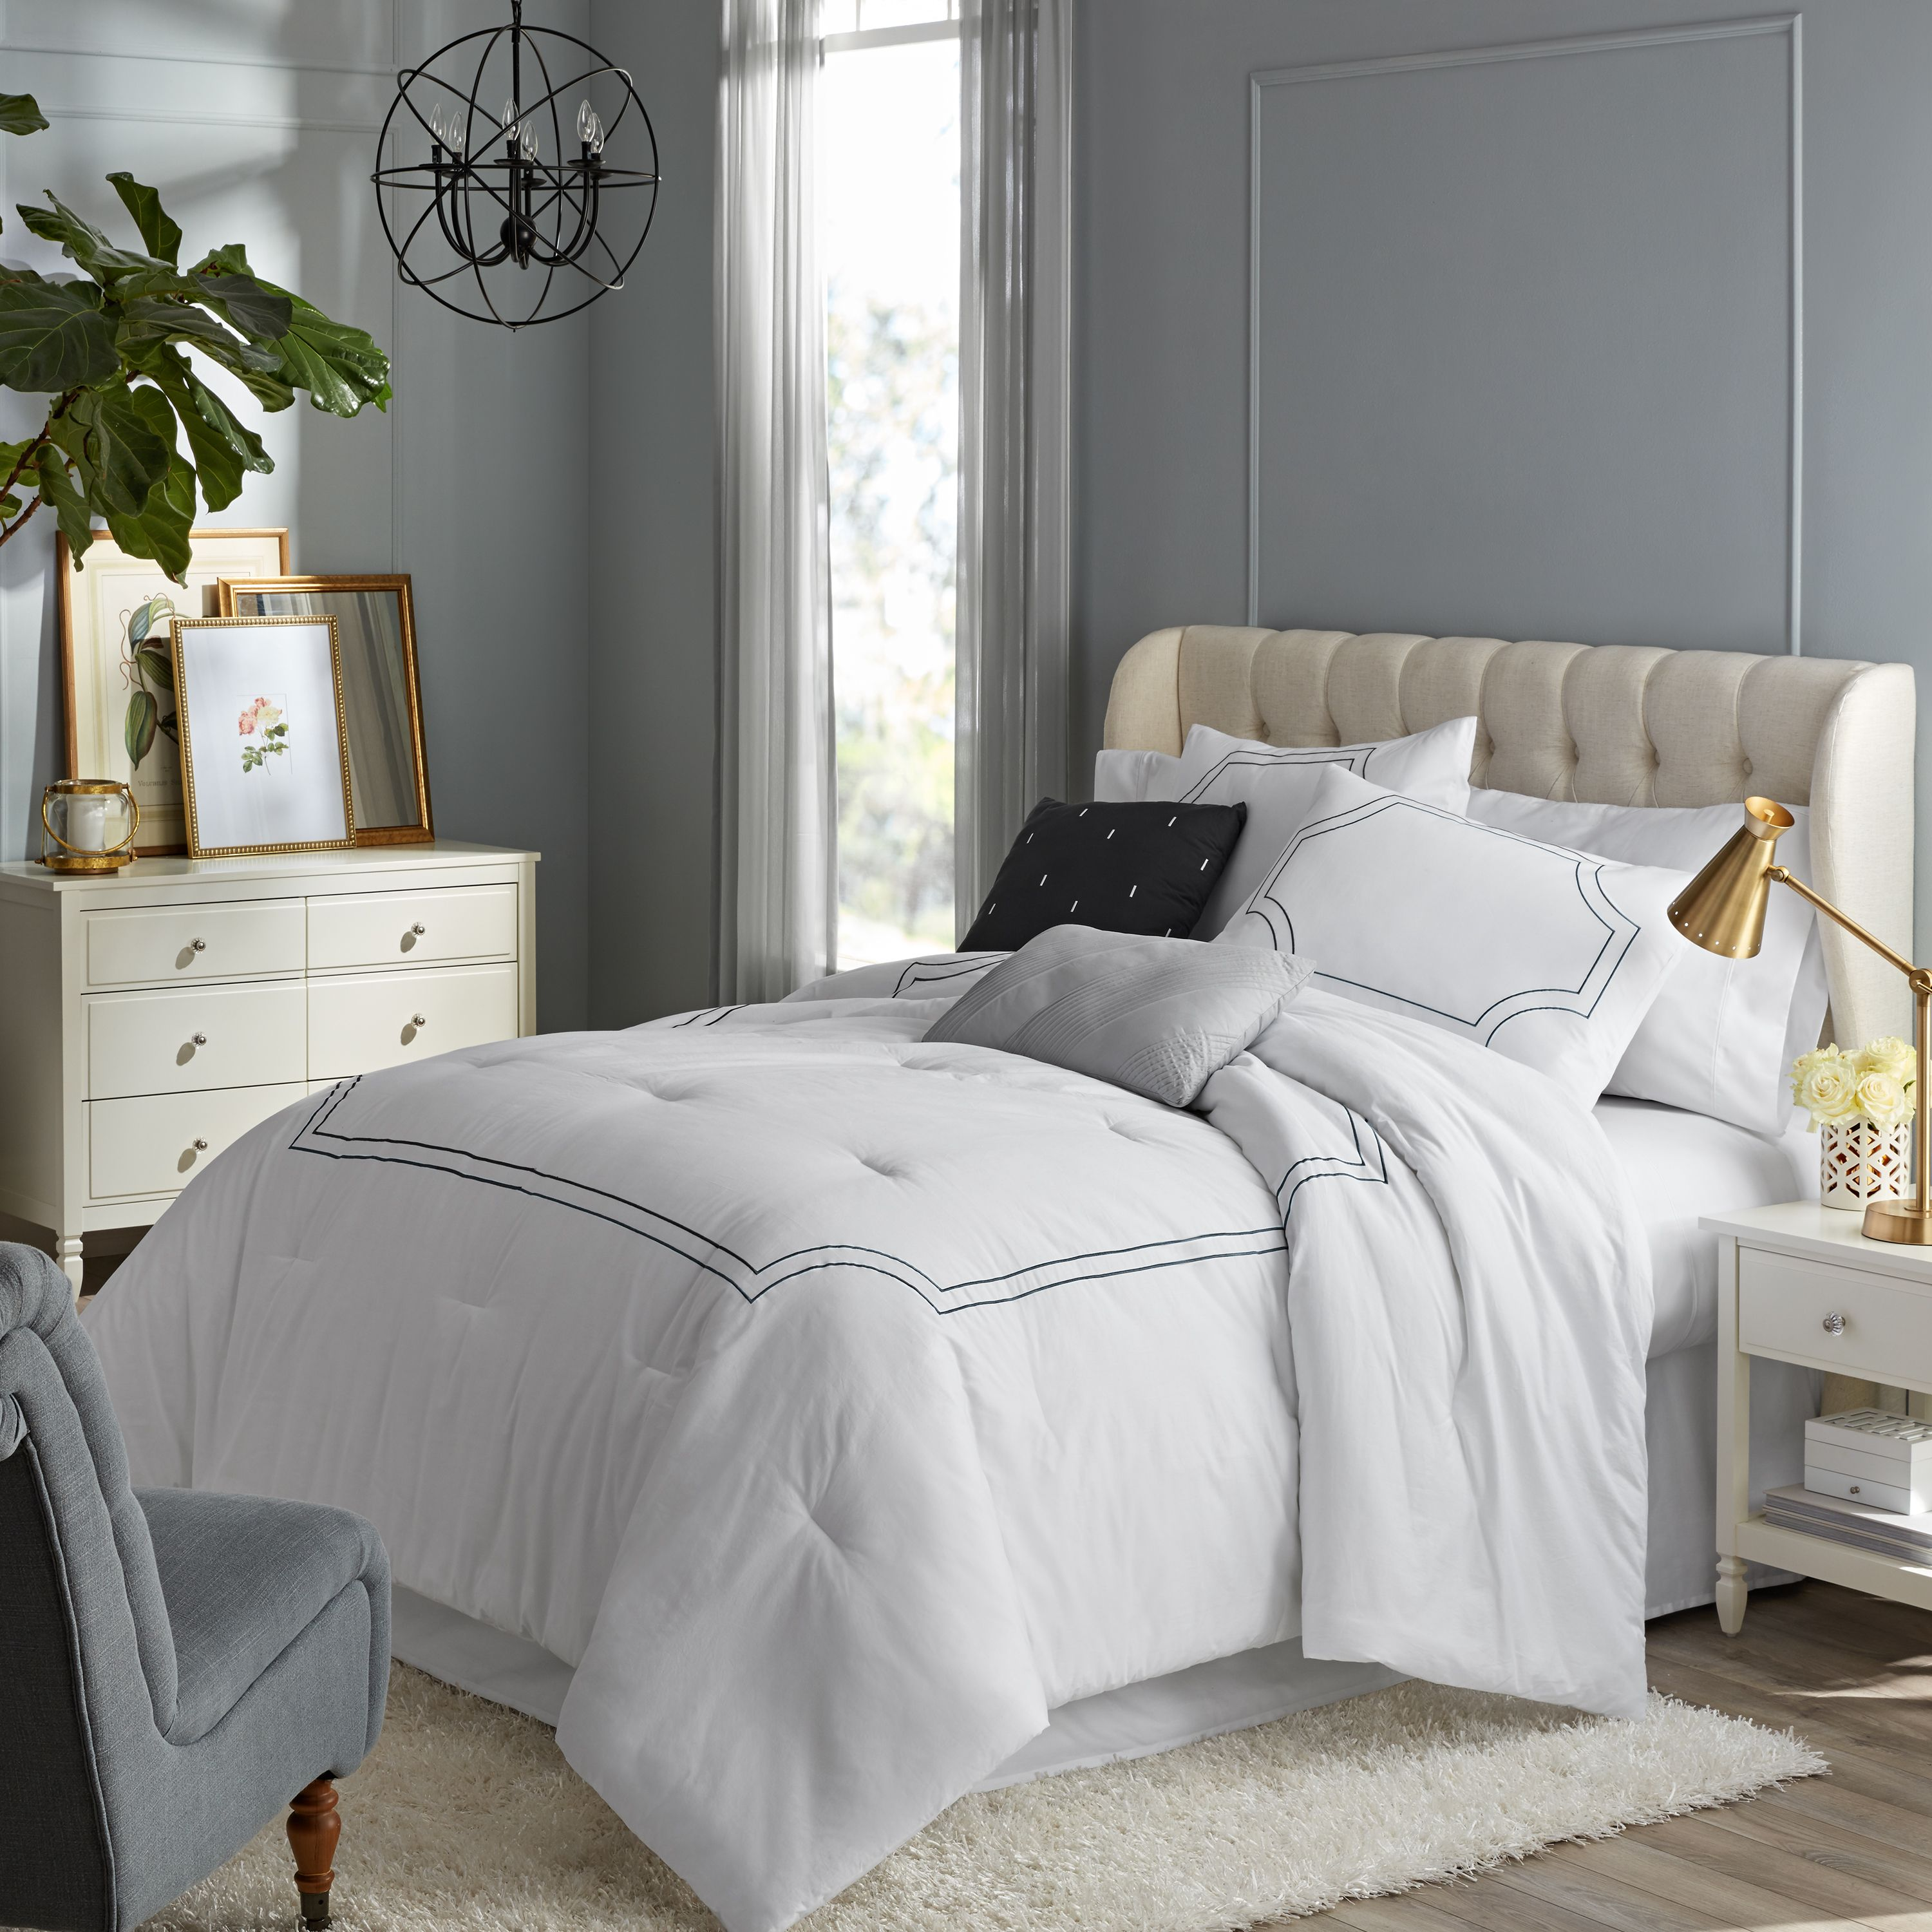 Hotel Style Florence Embroidered Comforter Set, 5 Pieces